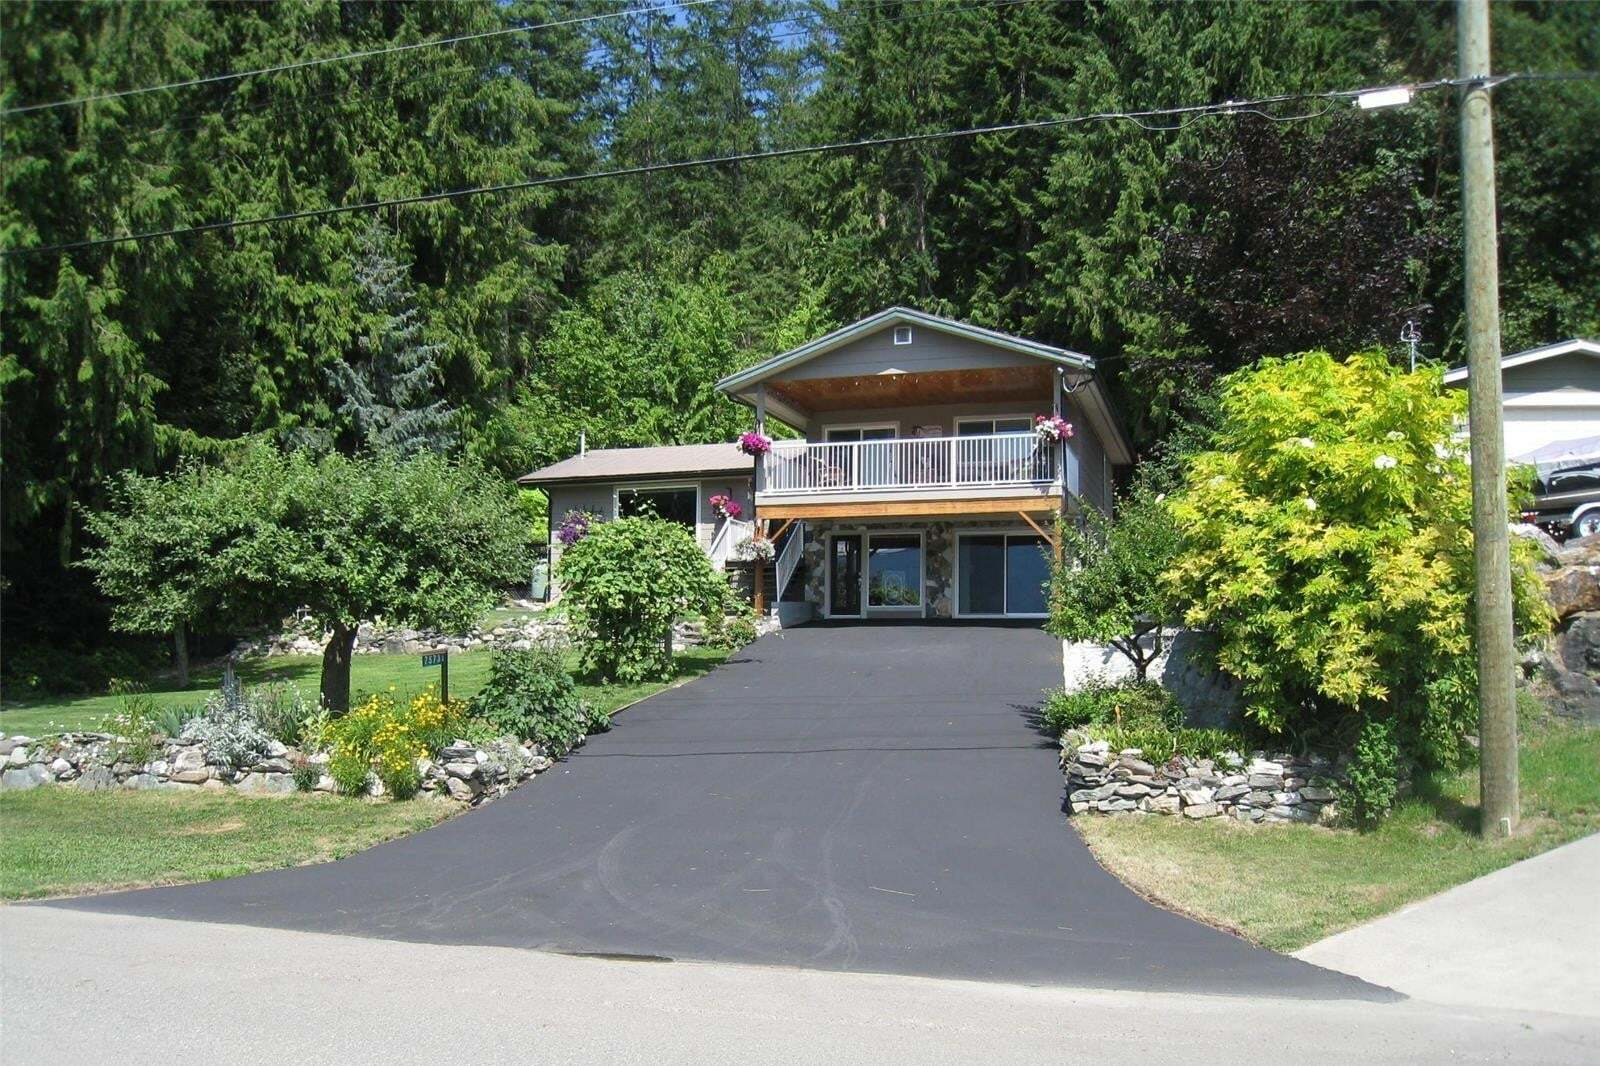 House for sale at 7573 Squilax Anglemont Rd Anglemont British Columbia - MLS: 10212669